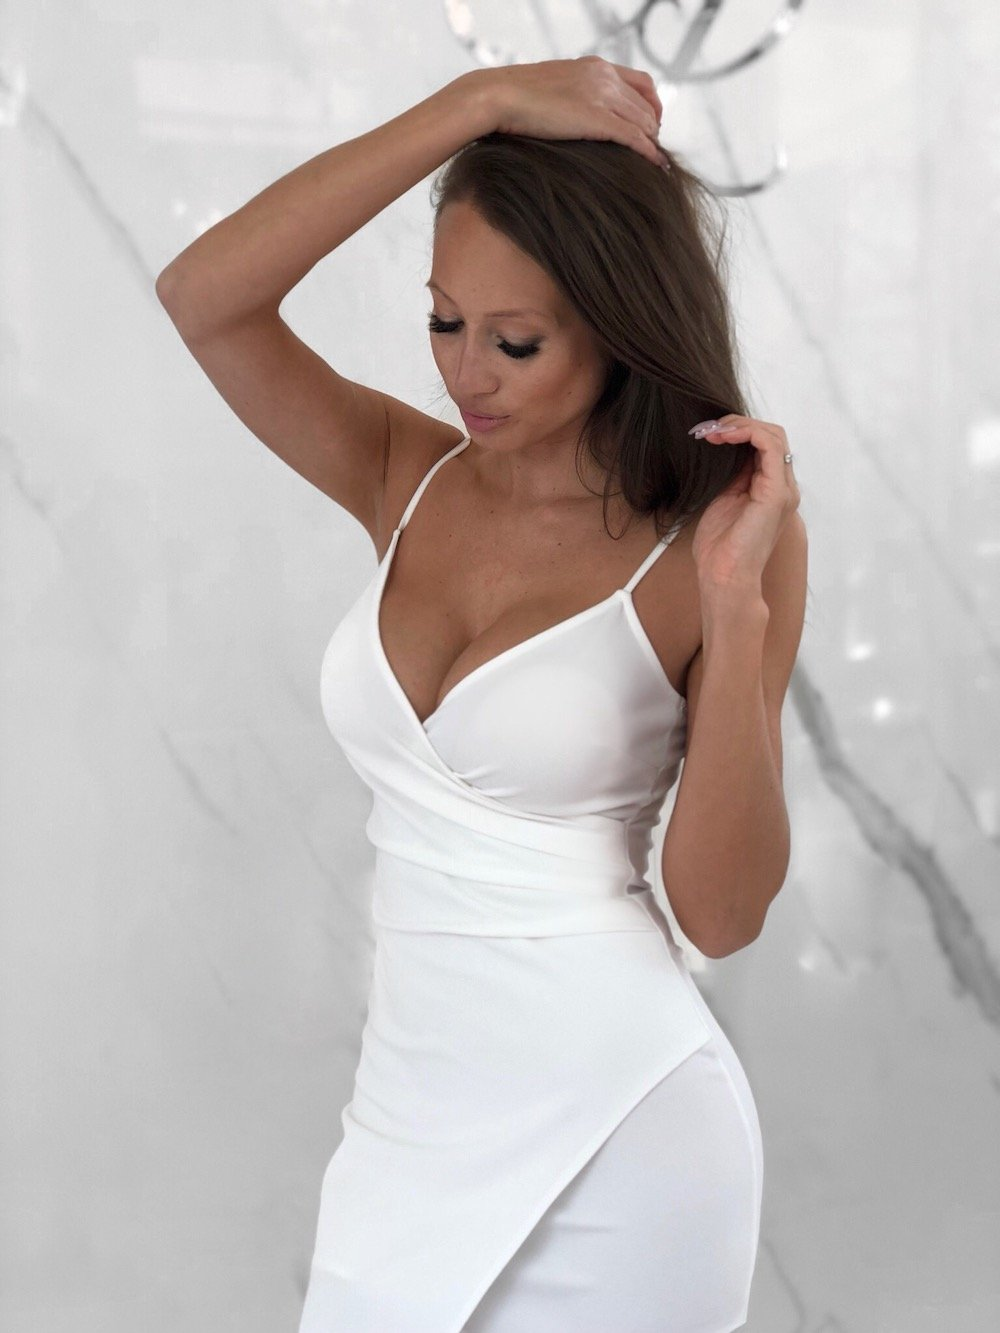 Selena Dress, Women's White Dresses